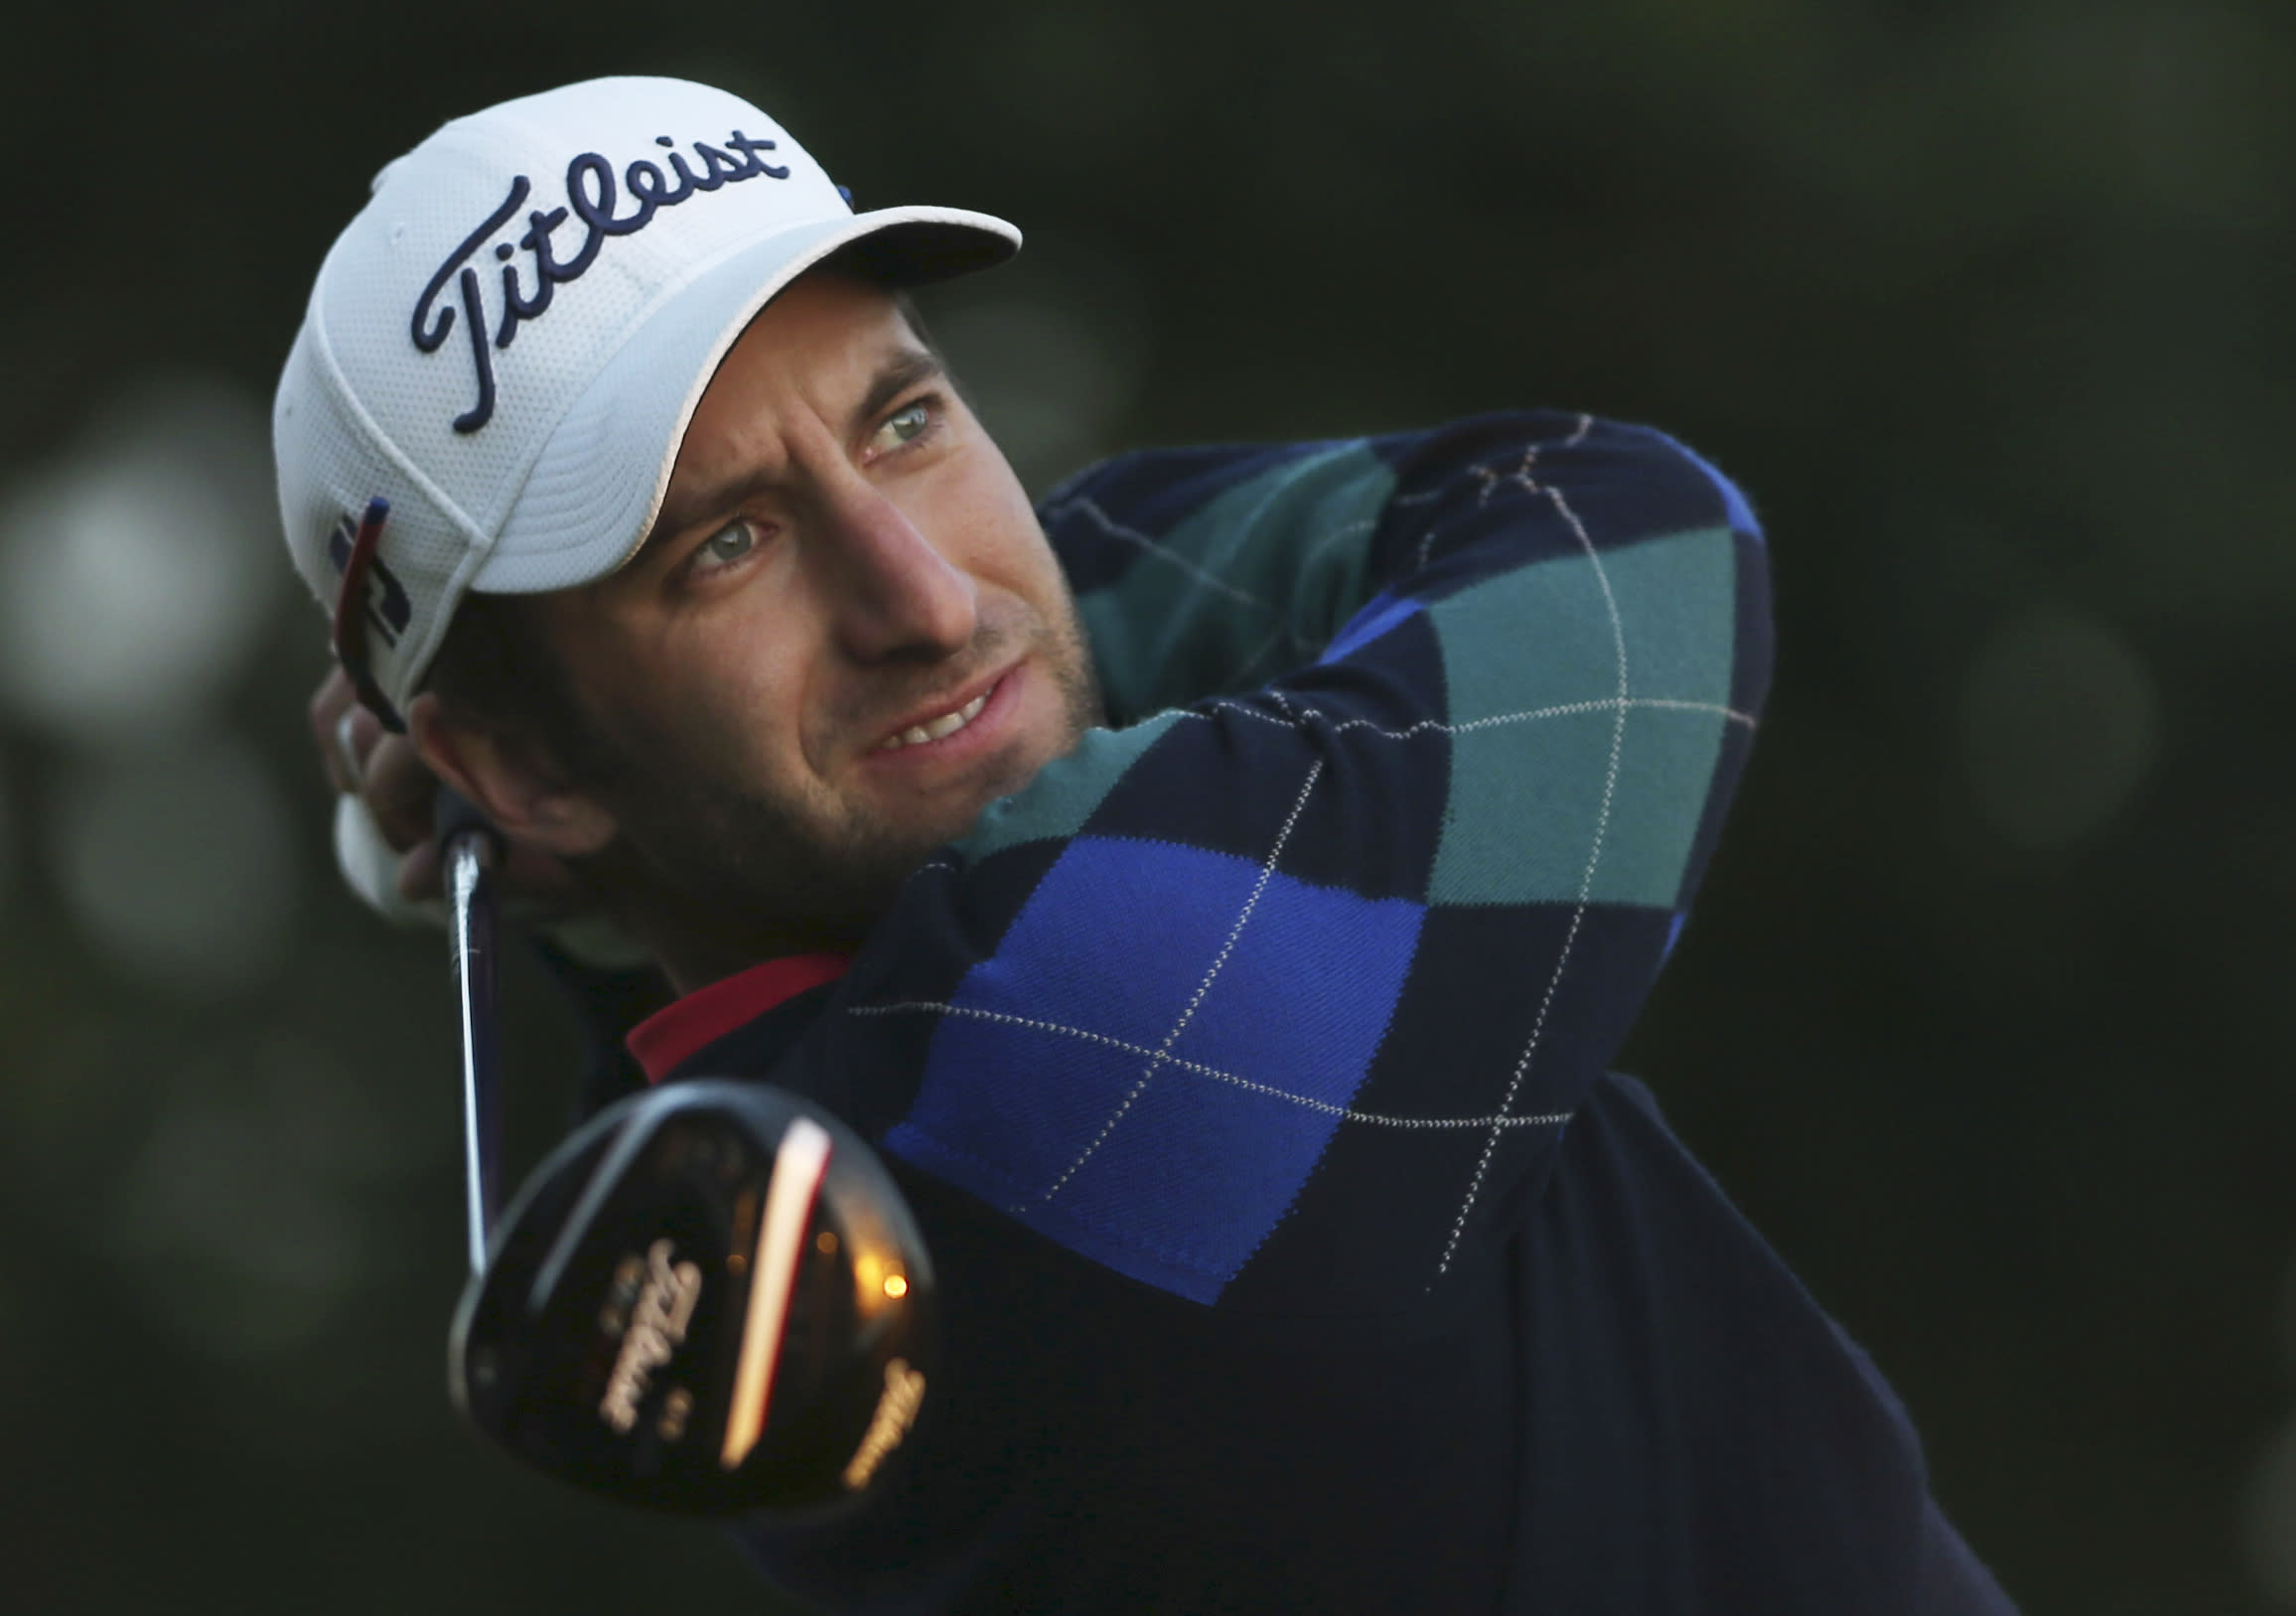 Scotland's Warren leads Dubai by 1 in clubhouse after 2nd